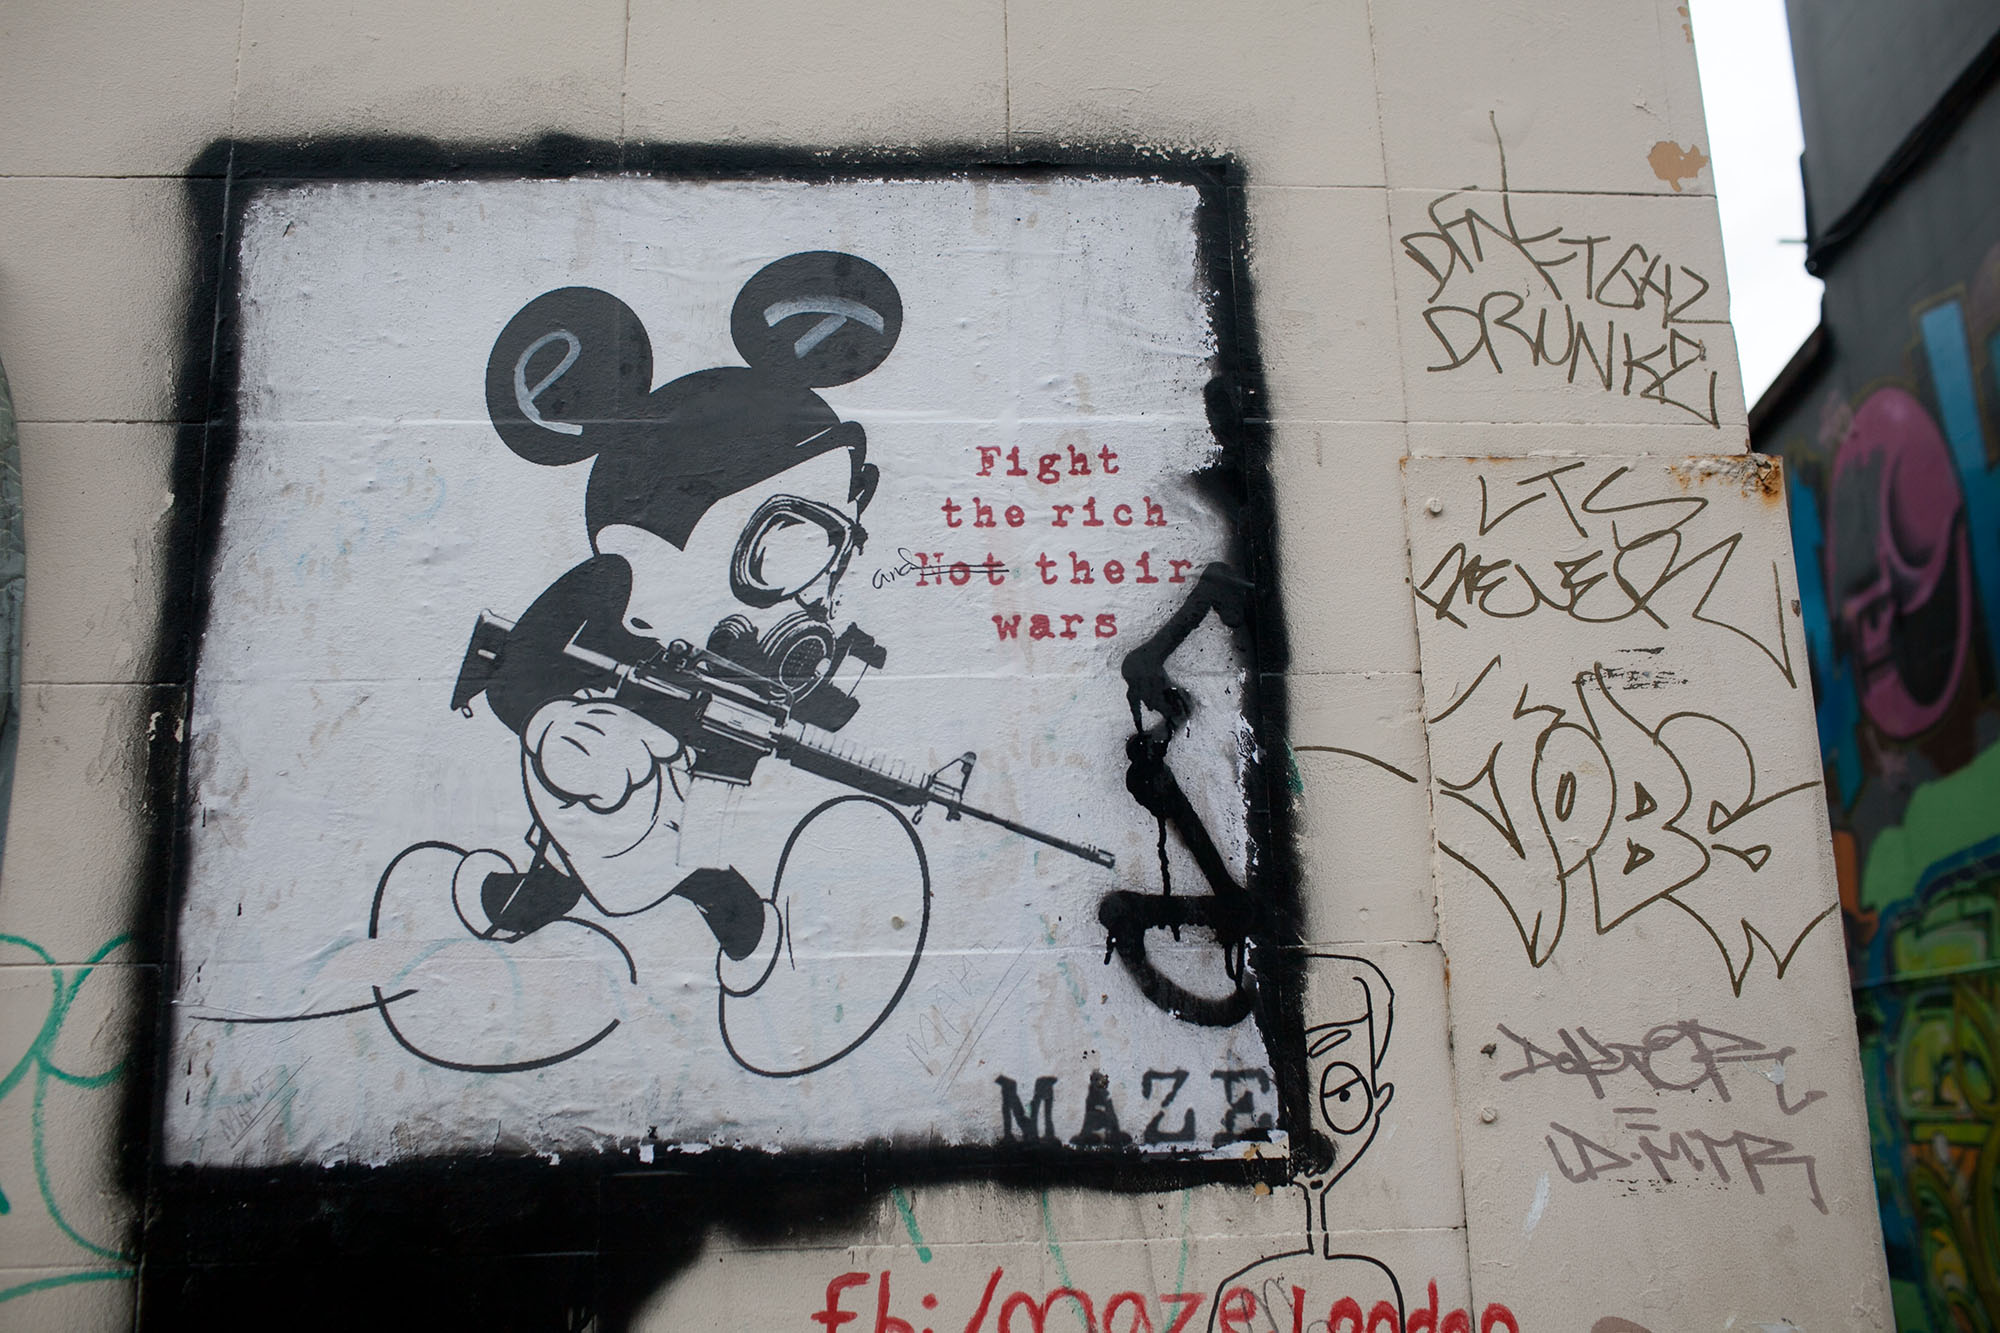 Fight the rich, not their wars. Mickey Mouse with a gas mask and gun by MAZE | Brick Lane Street Art in London. | Street Art at Brick Lane in London, England.